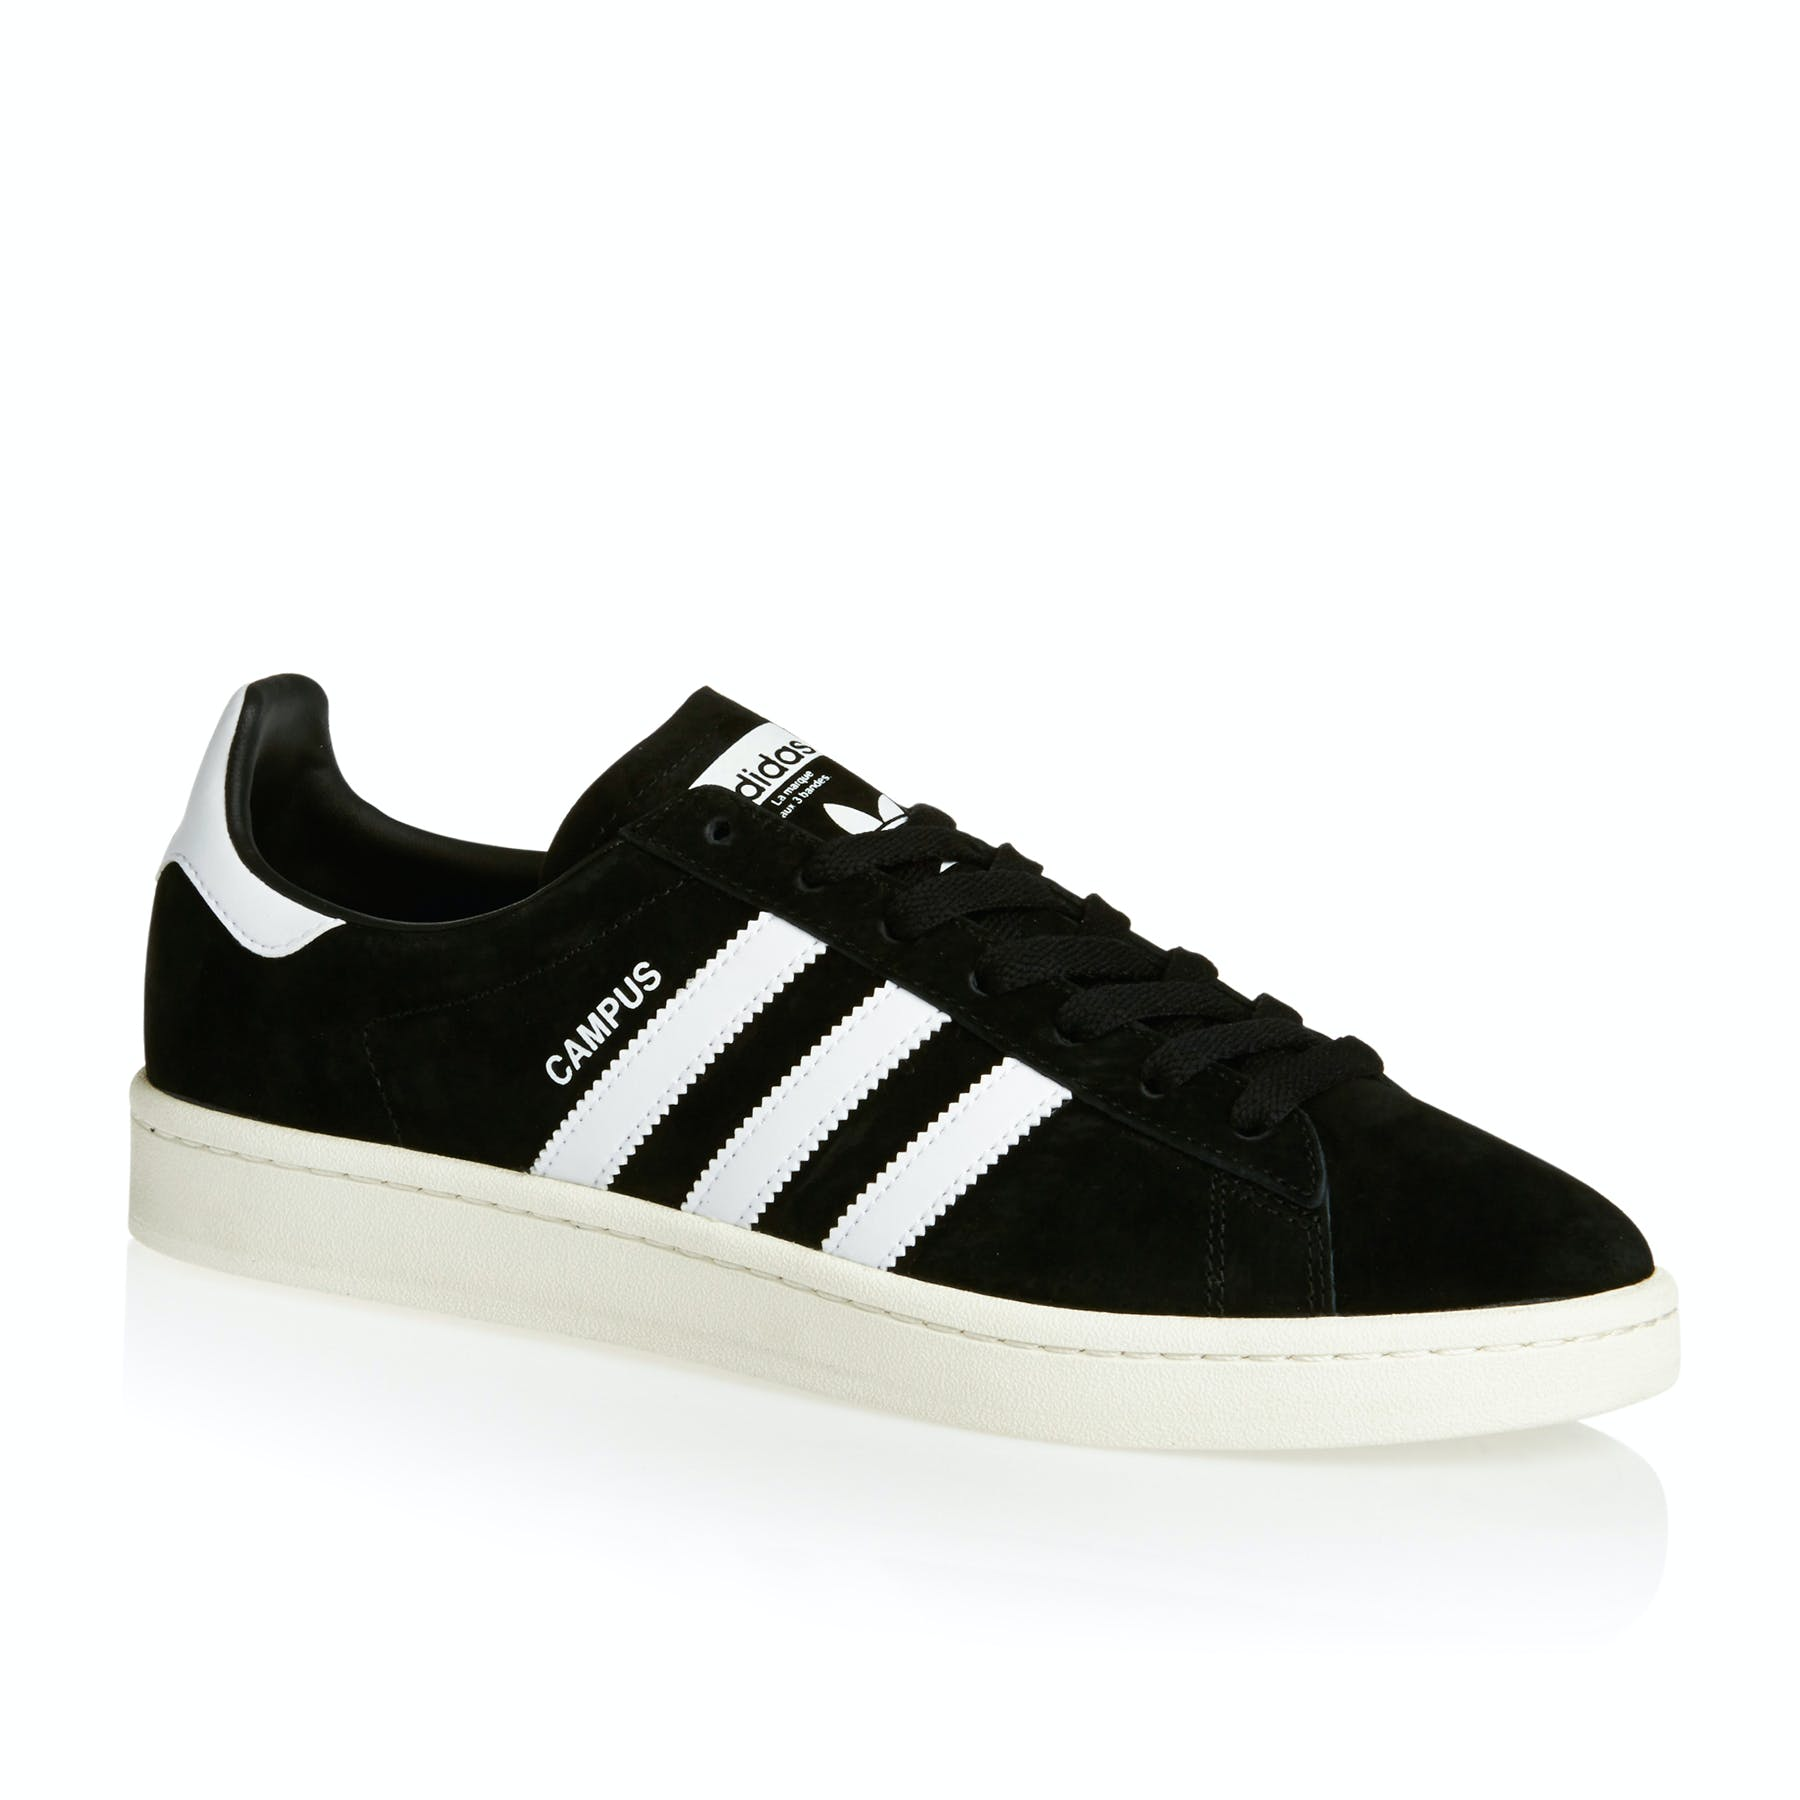 077f3766 Adidas Originals Campus Shoes - Free Delivery options on All Orders from  Surfdome UK